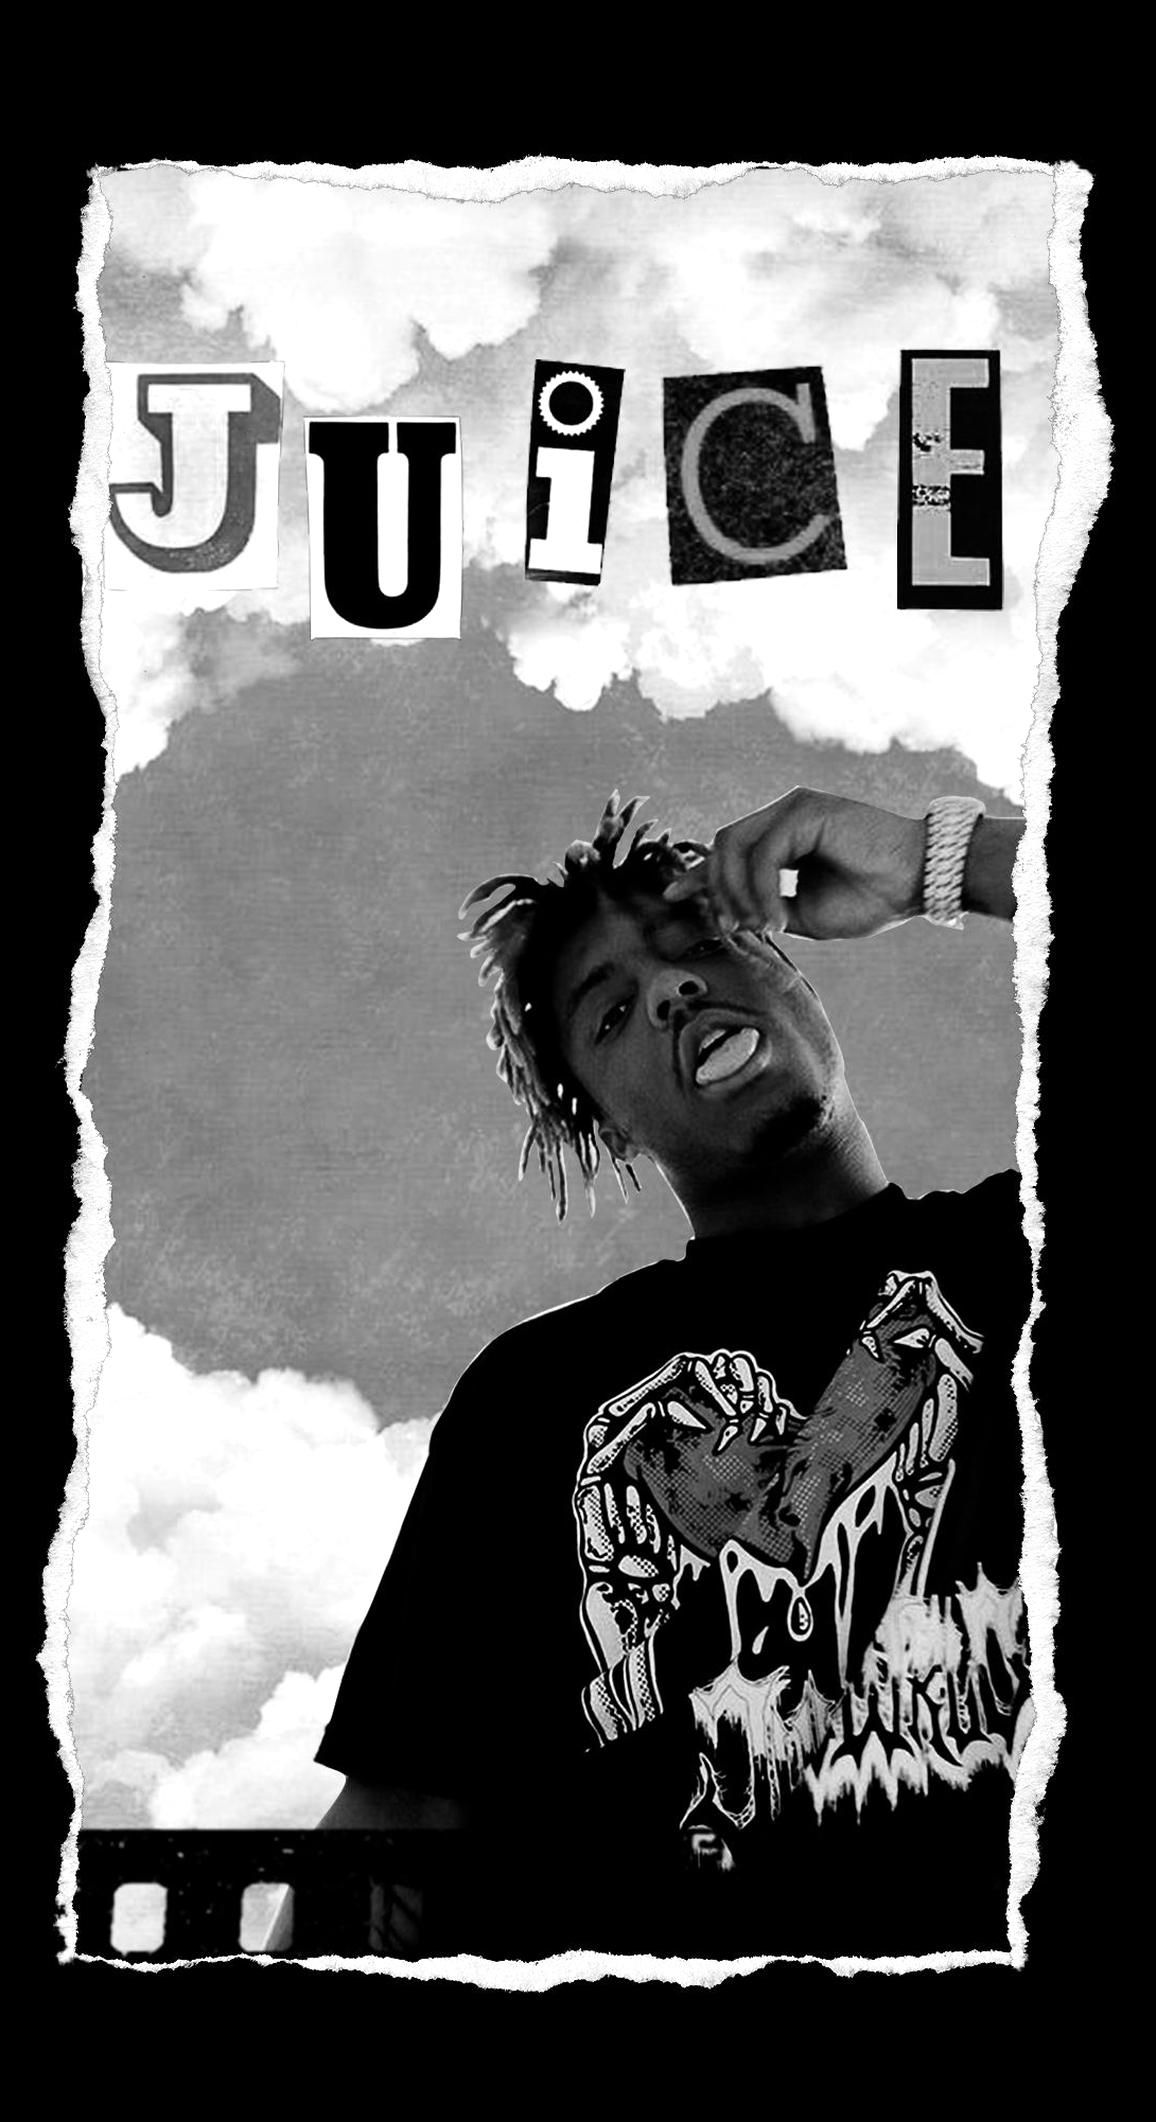 Juice Wrld Wallpaper For Iphone Full Hd In 2020 Edgy Wallpaper Rapper Wallpaper Iphone Iphone Wallpaper